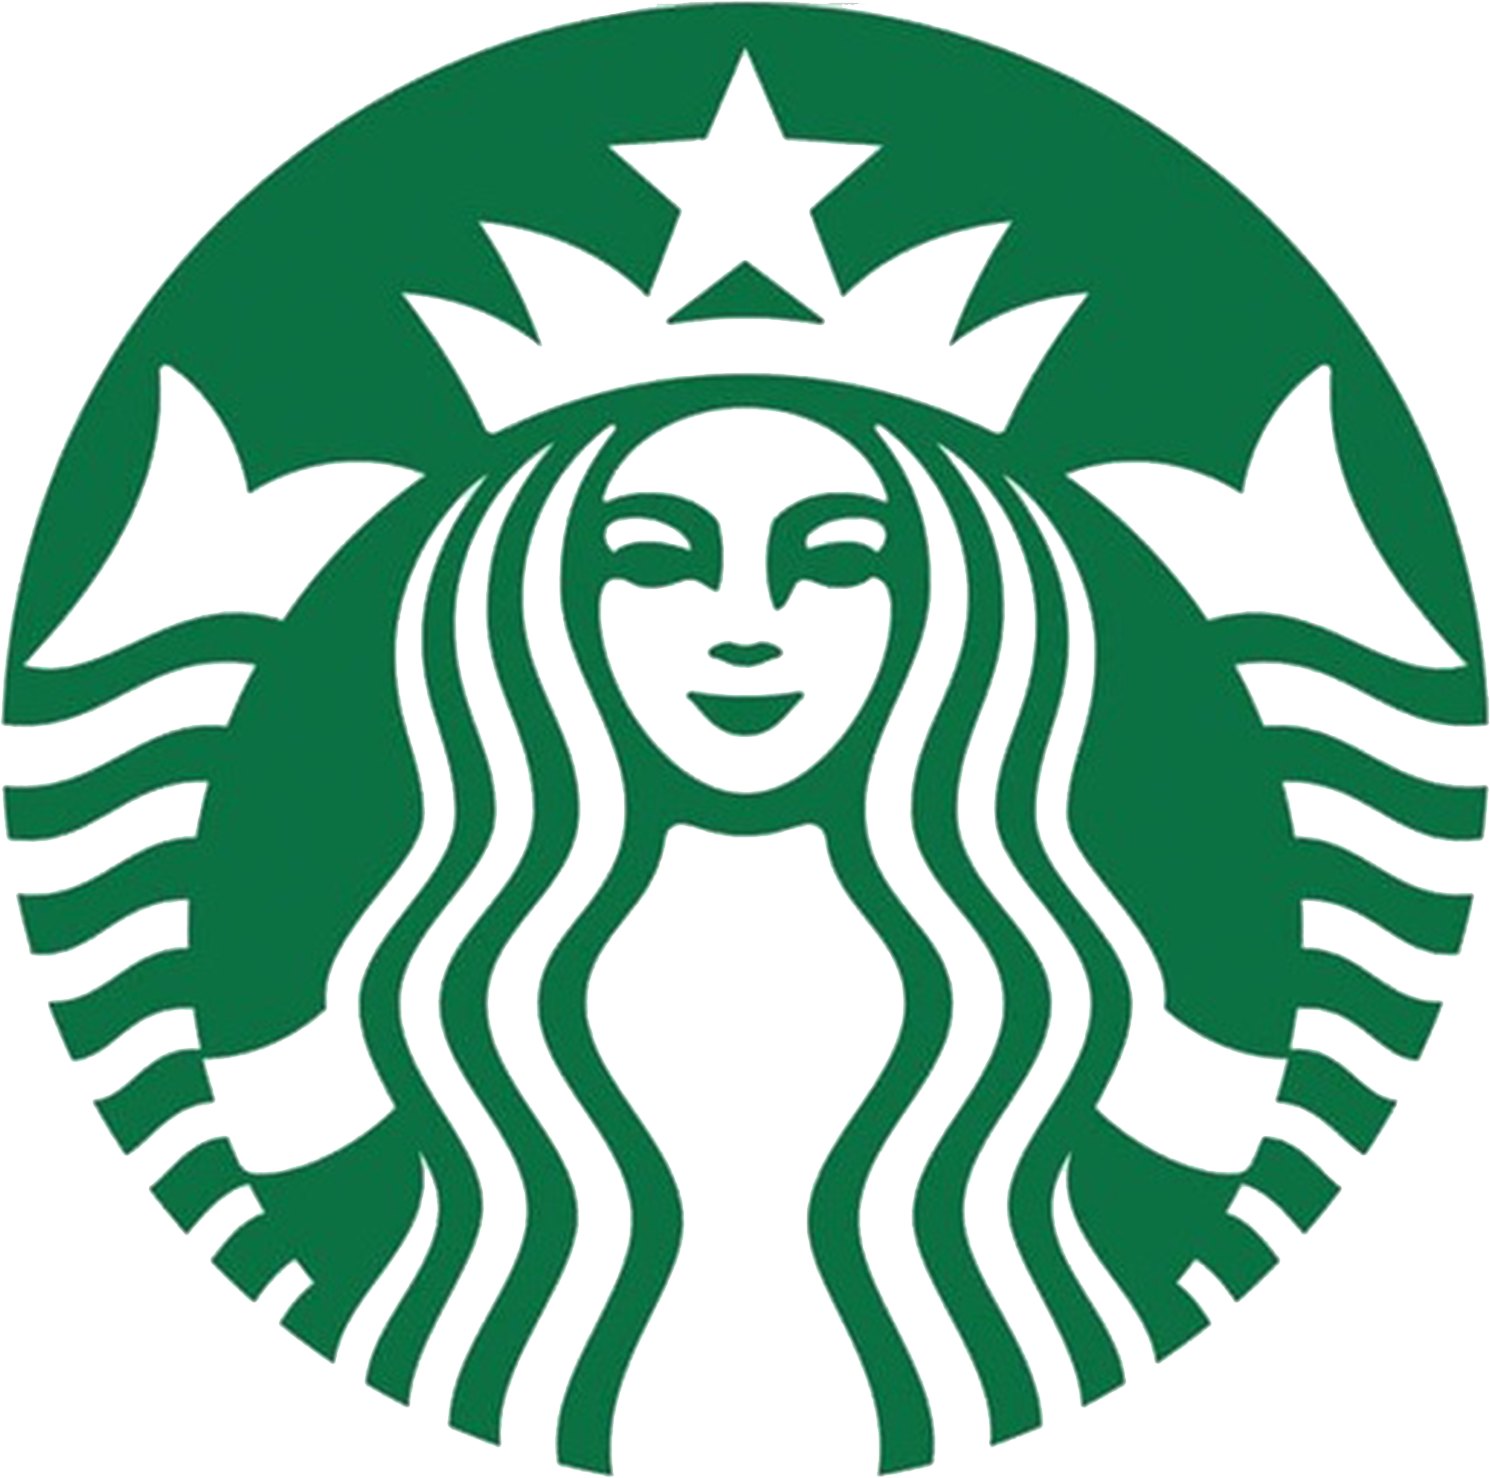 starbucks_featured_image-1.png